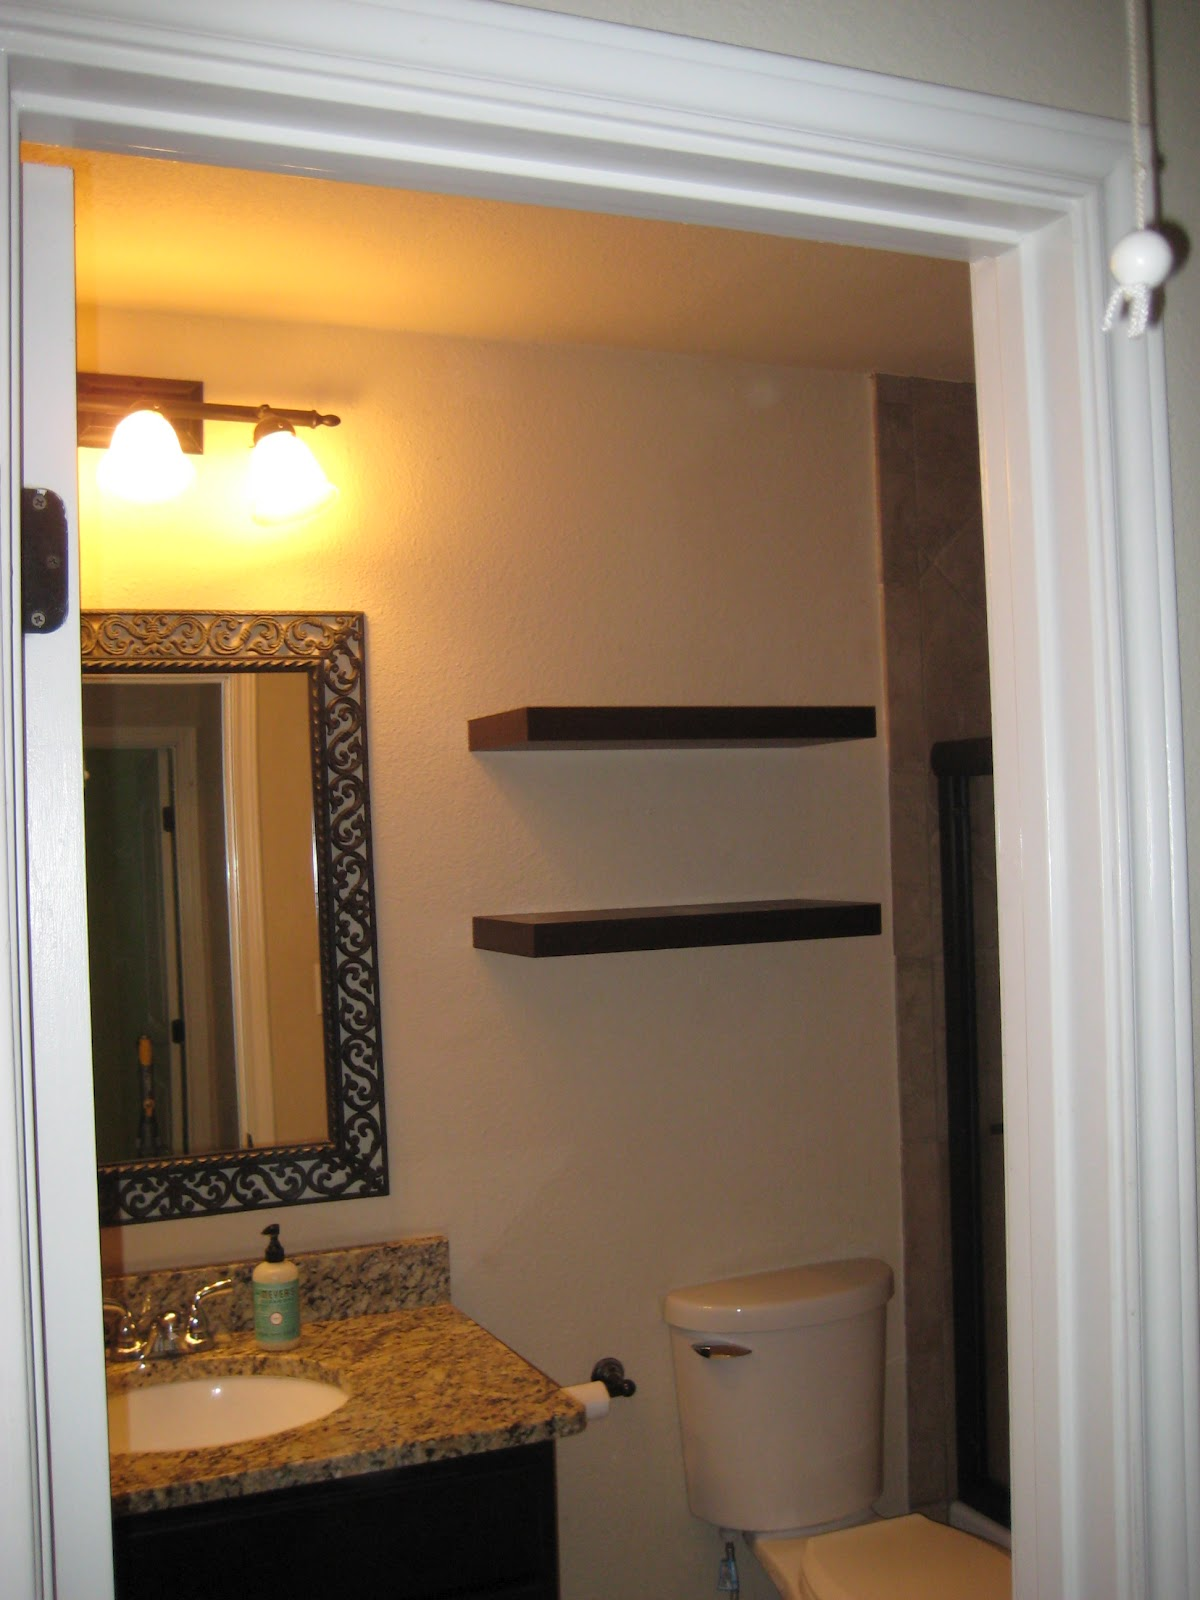 Towel Rack Placement In Bathroom Austin Condo Good Byes Craft